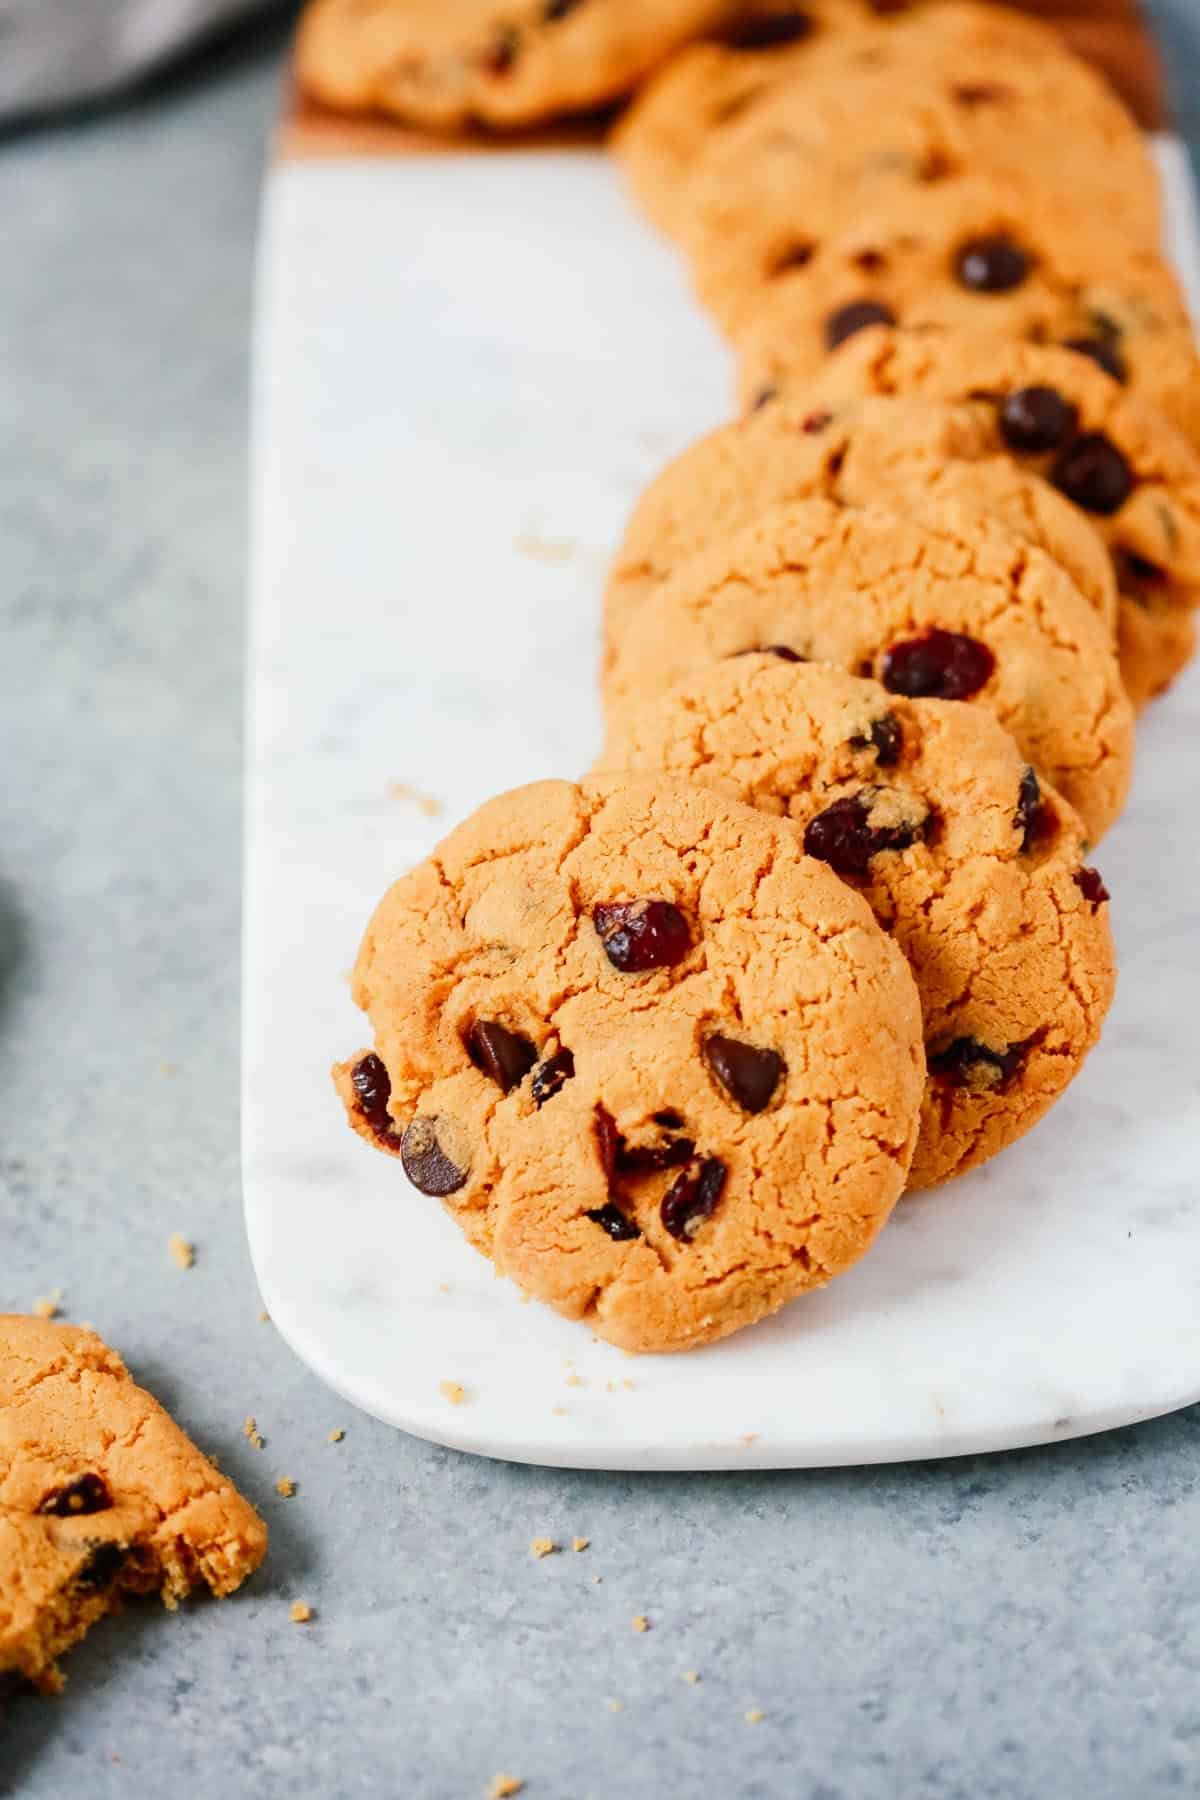 A row of chocolate chip cookies with cranberries in a row on a marble serving board.